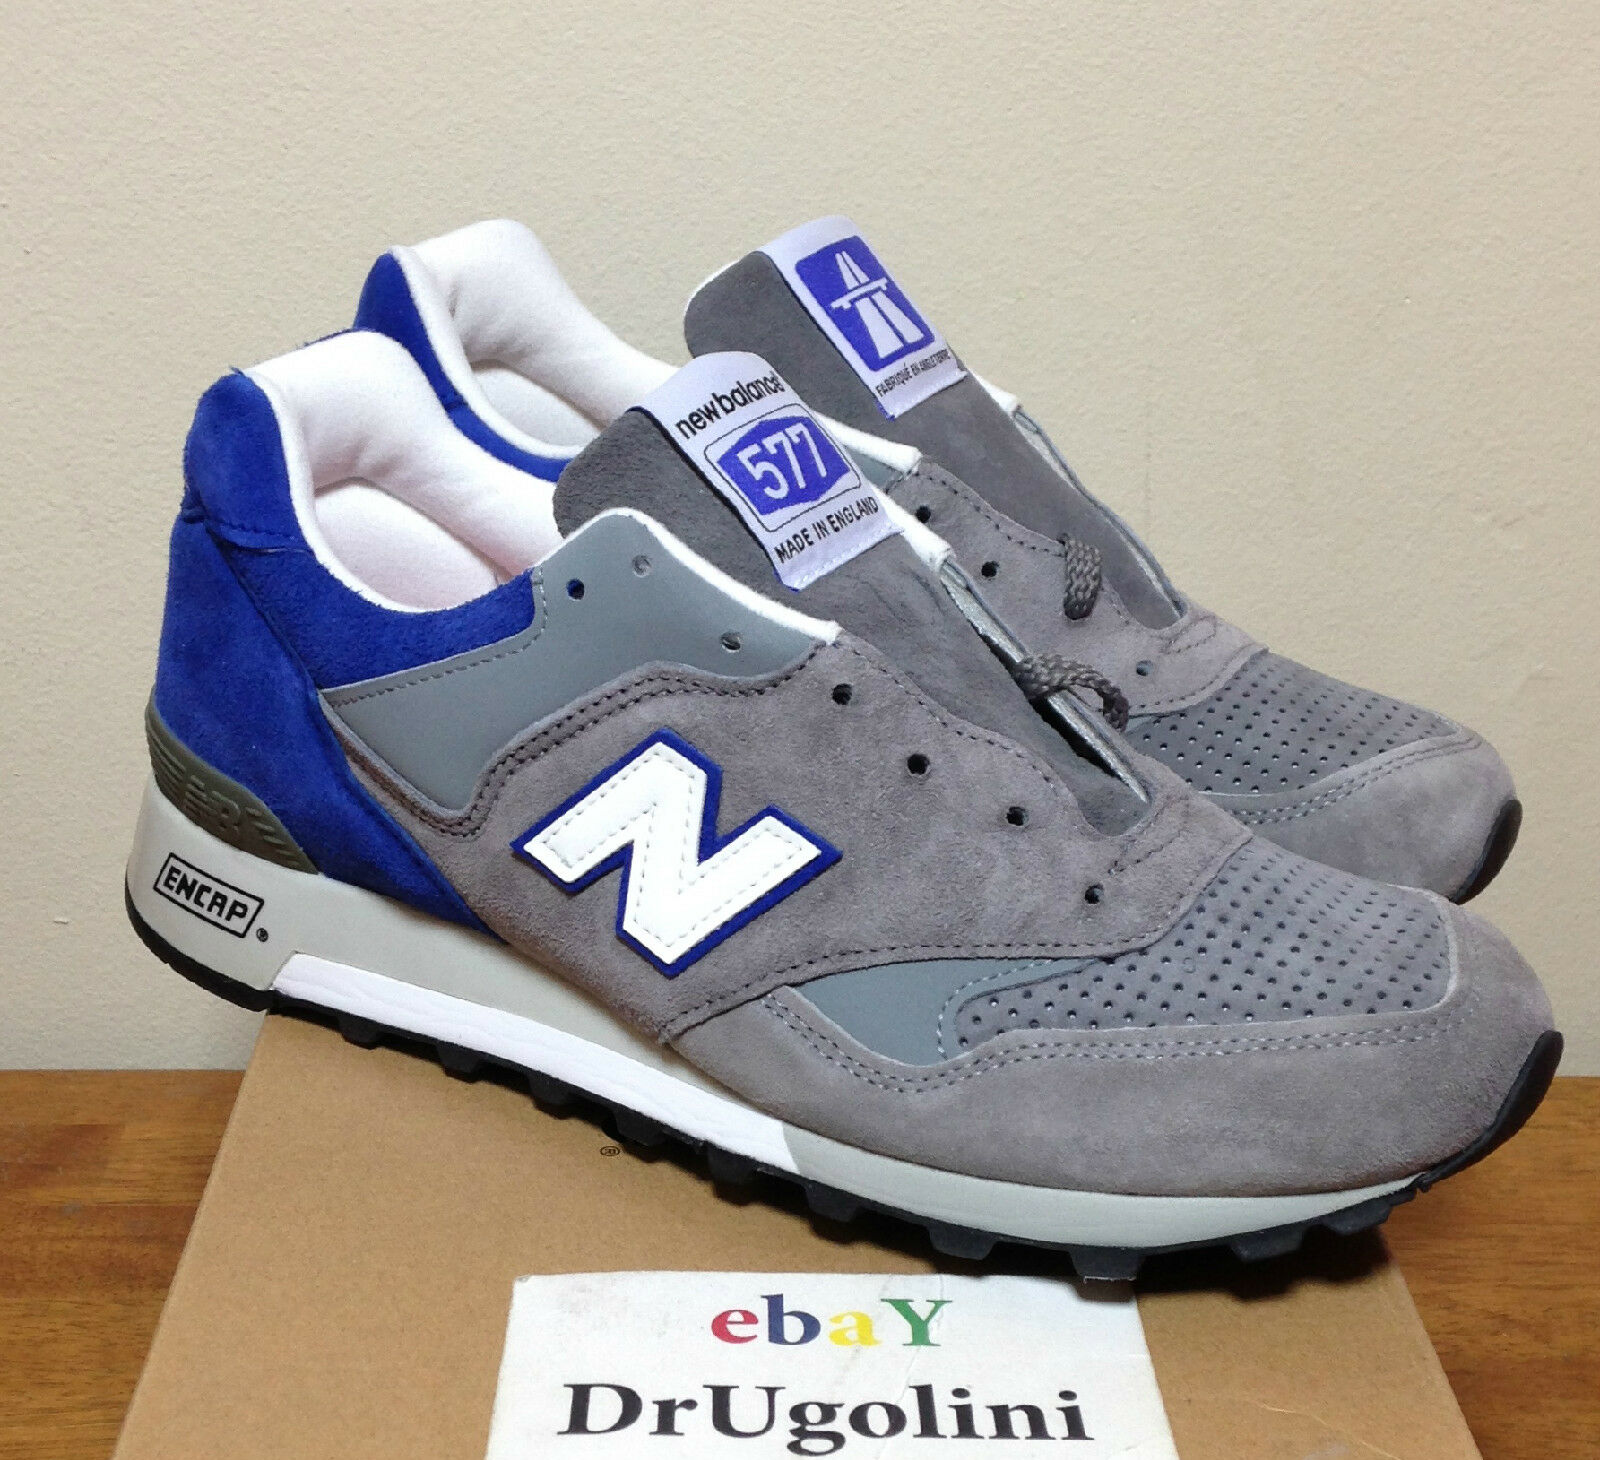 NEW BALANCE X THE GOOD WILL OUT M577GWO1 9-13 BLUE GREY DAY DRIVER AUTOBAHN 577